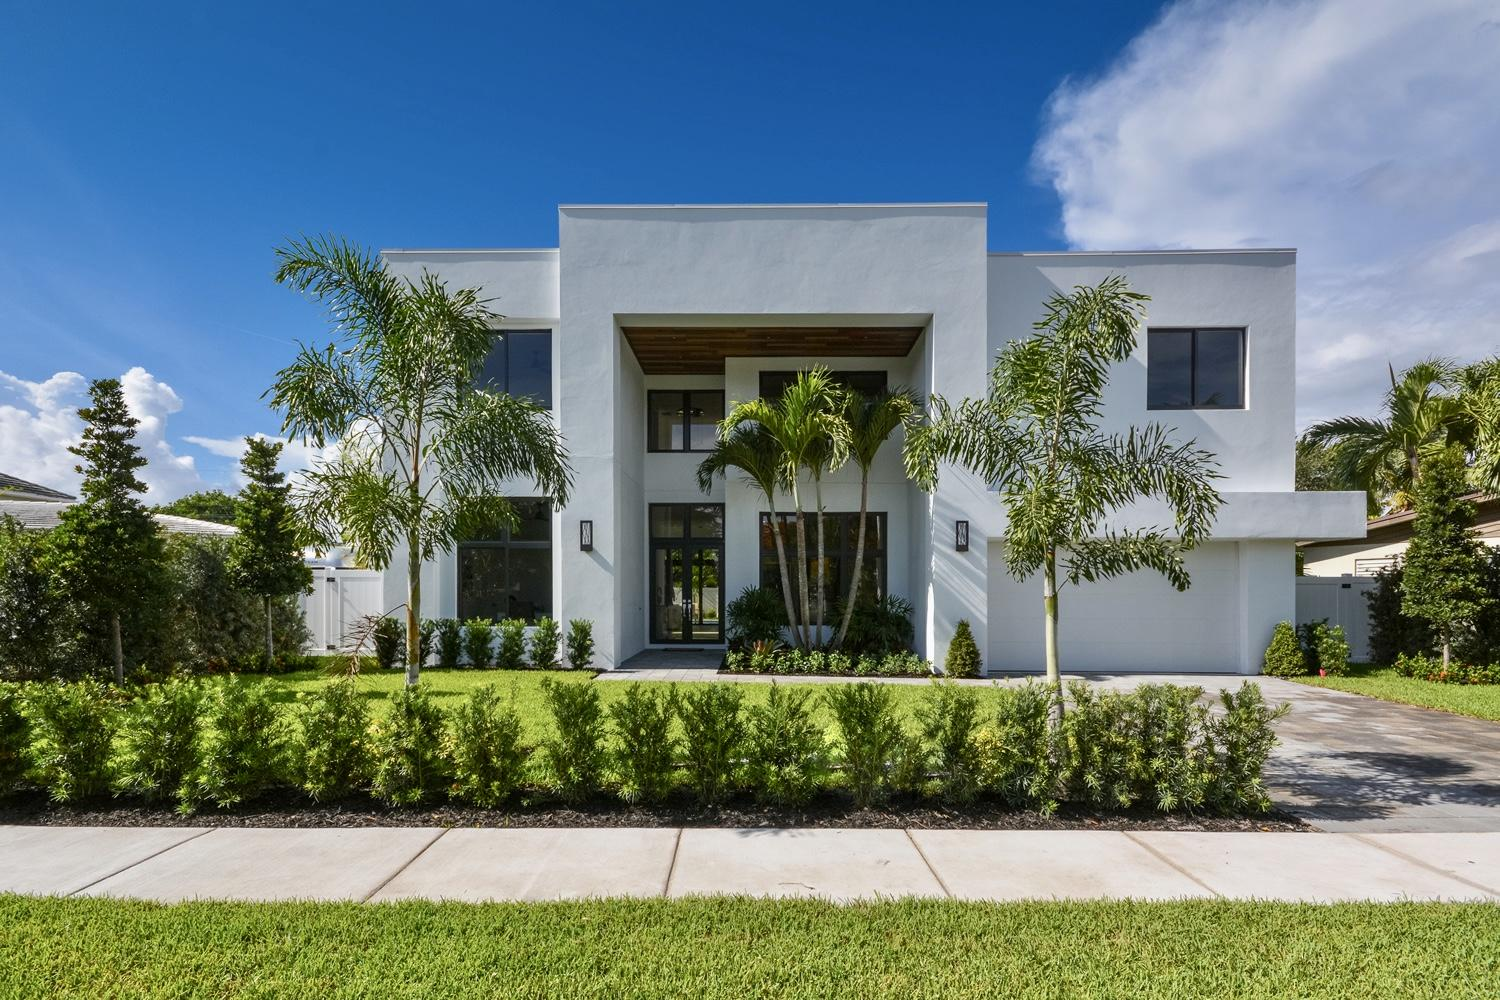 Details for 799 70th Street Ne, Boca Raton, FL 33487